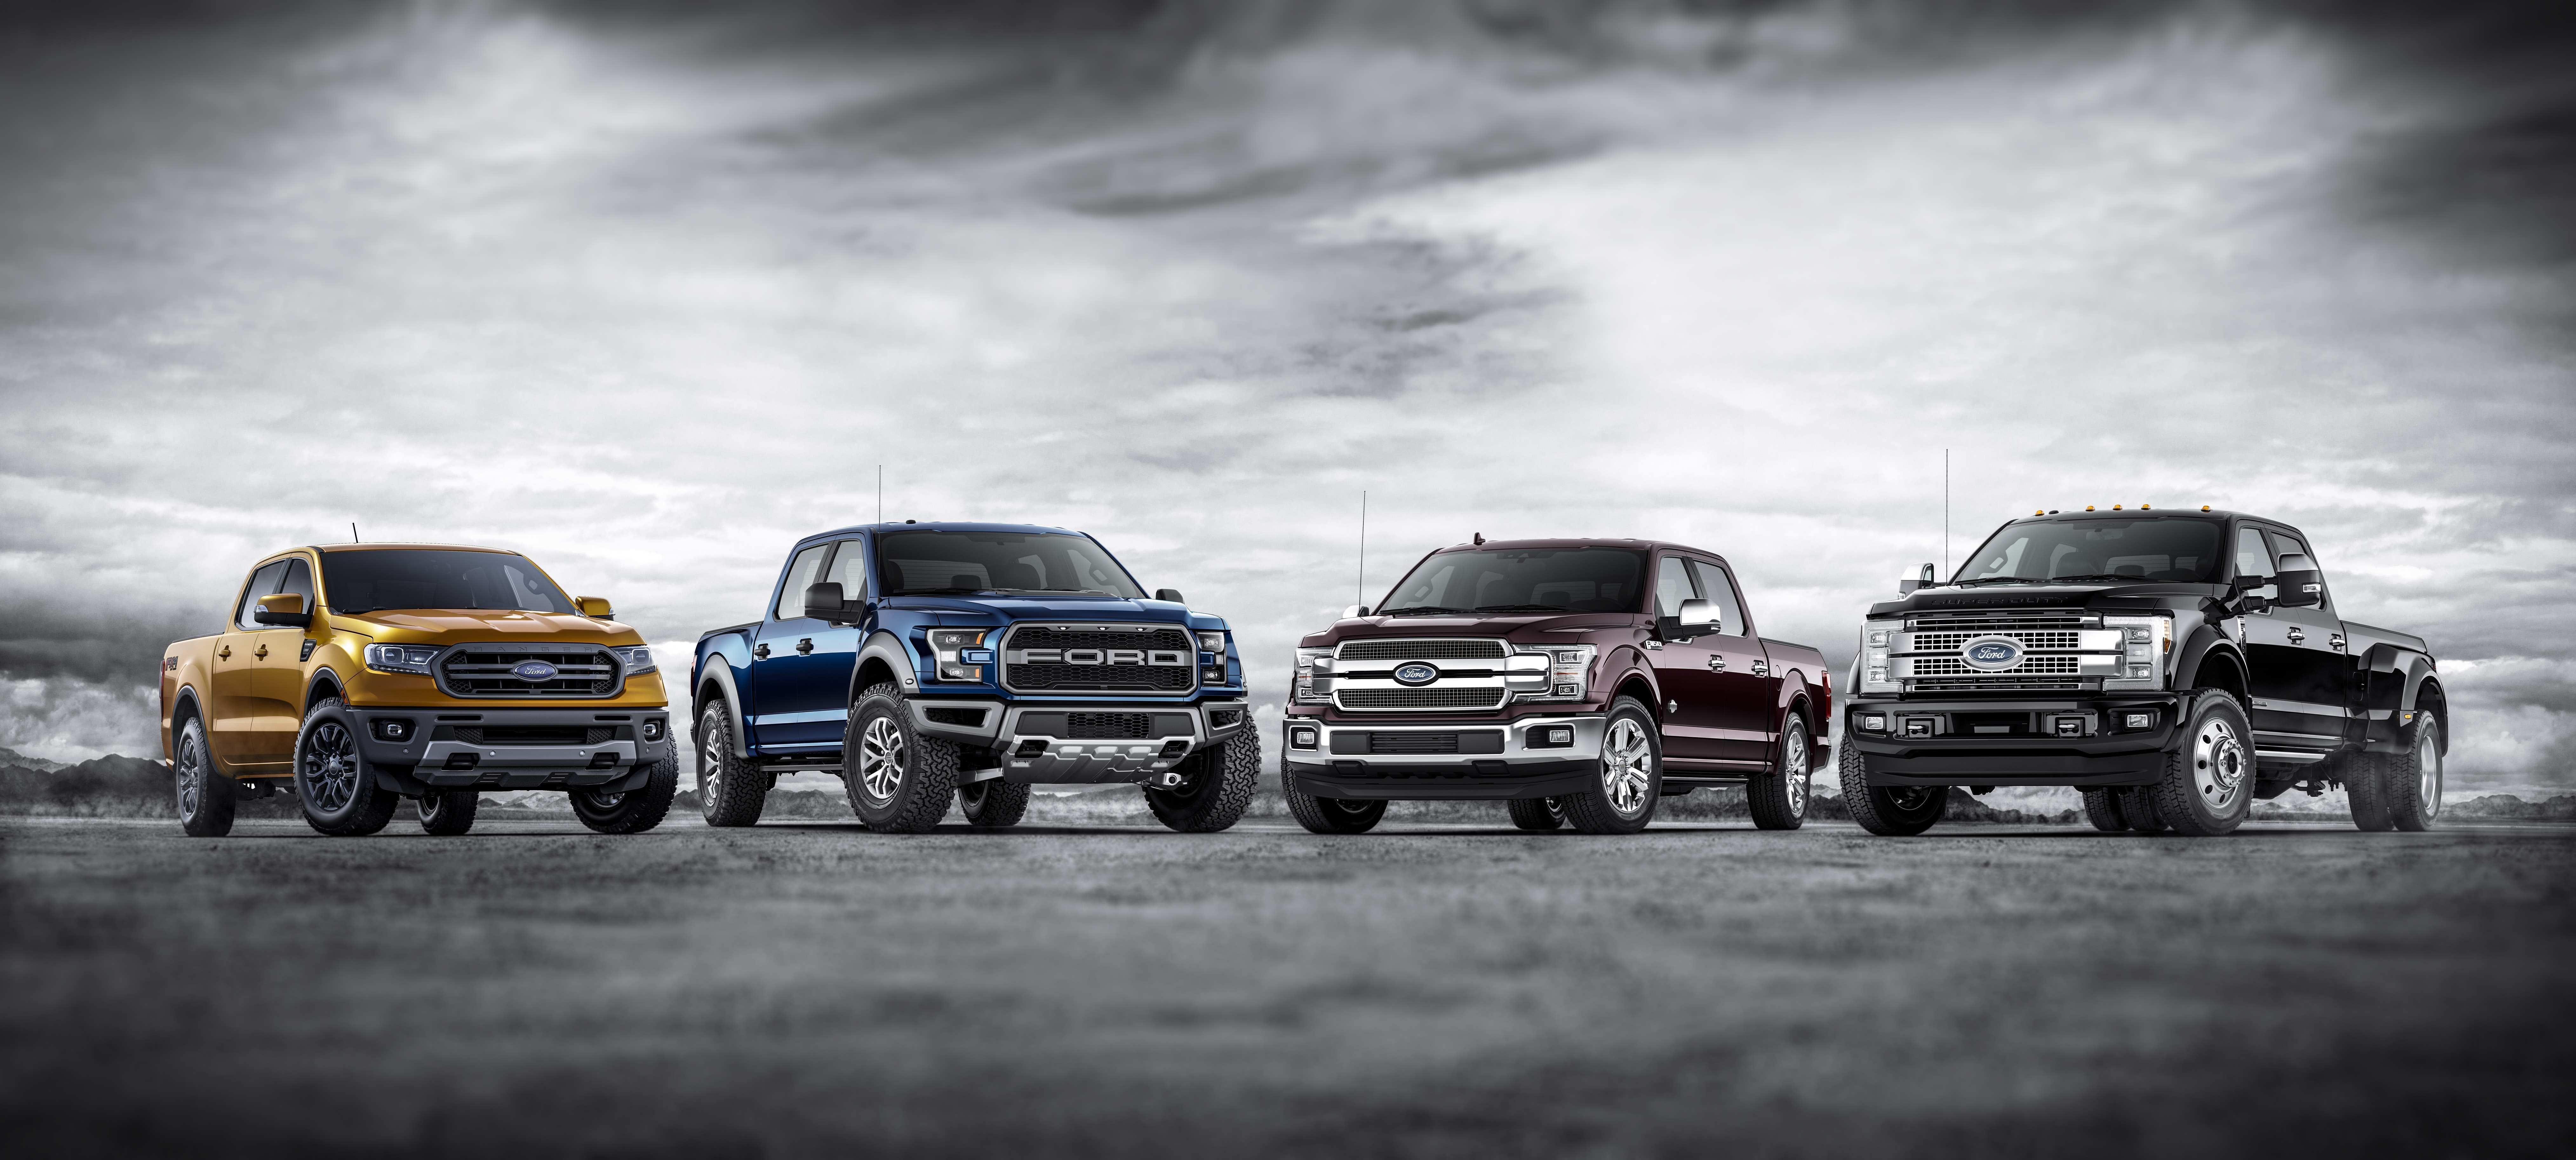 97 The Best 2019 Ford Vehicle Lineup History